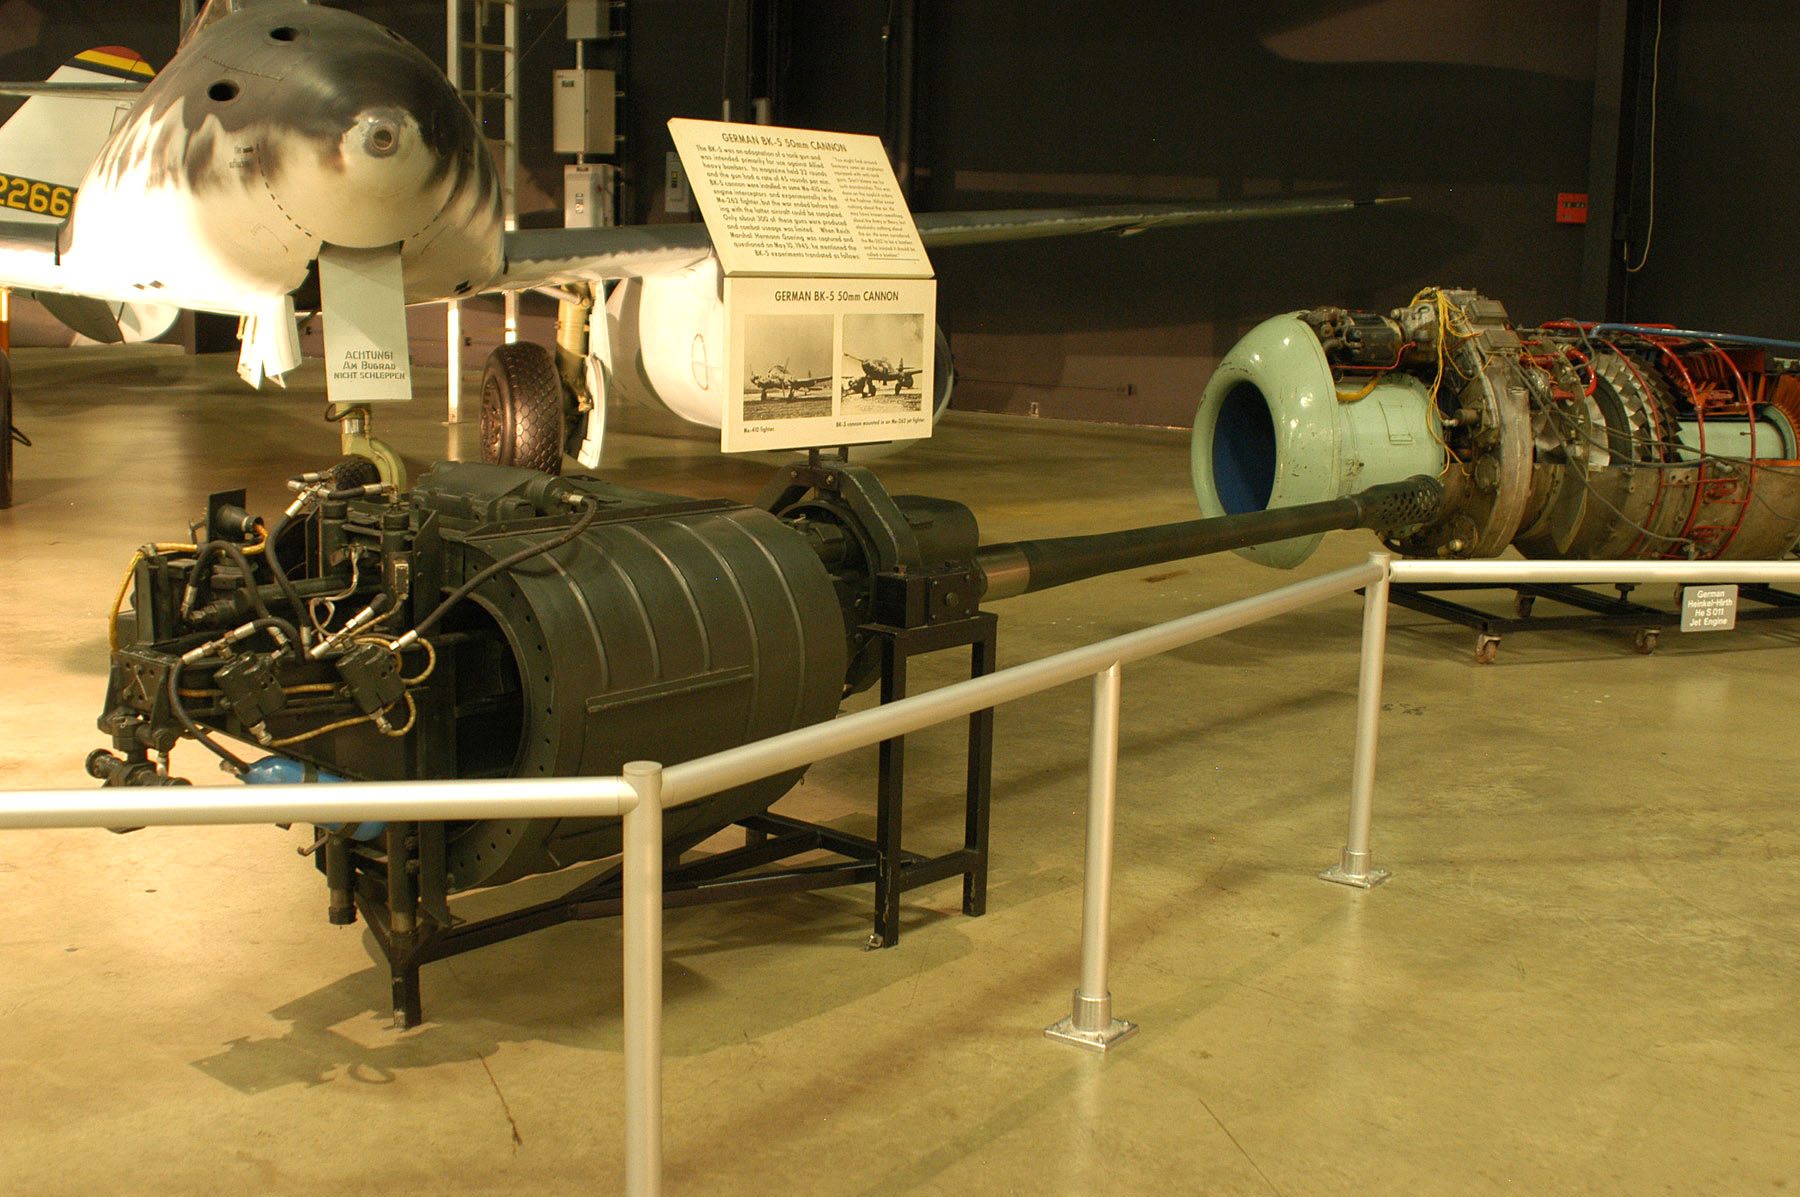 German 50 Mm Anti Tank Gun: German BK-5 50mm Cannon > National Museum Of The US Air